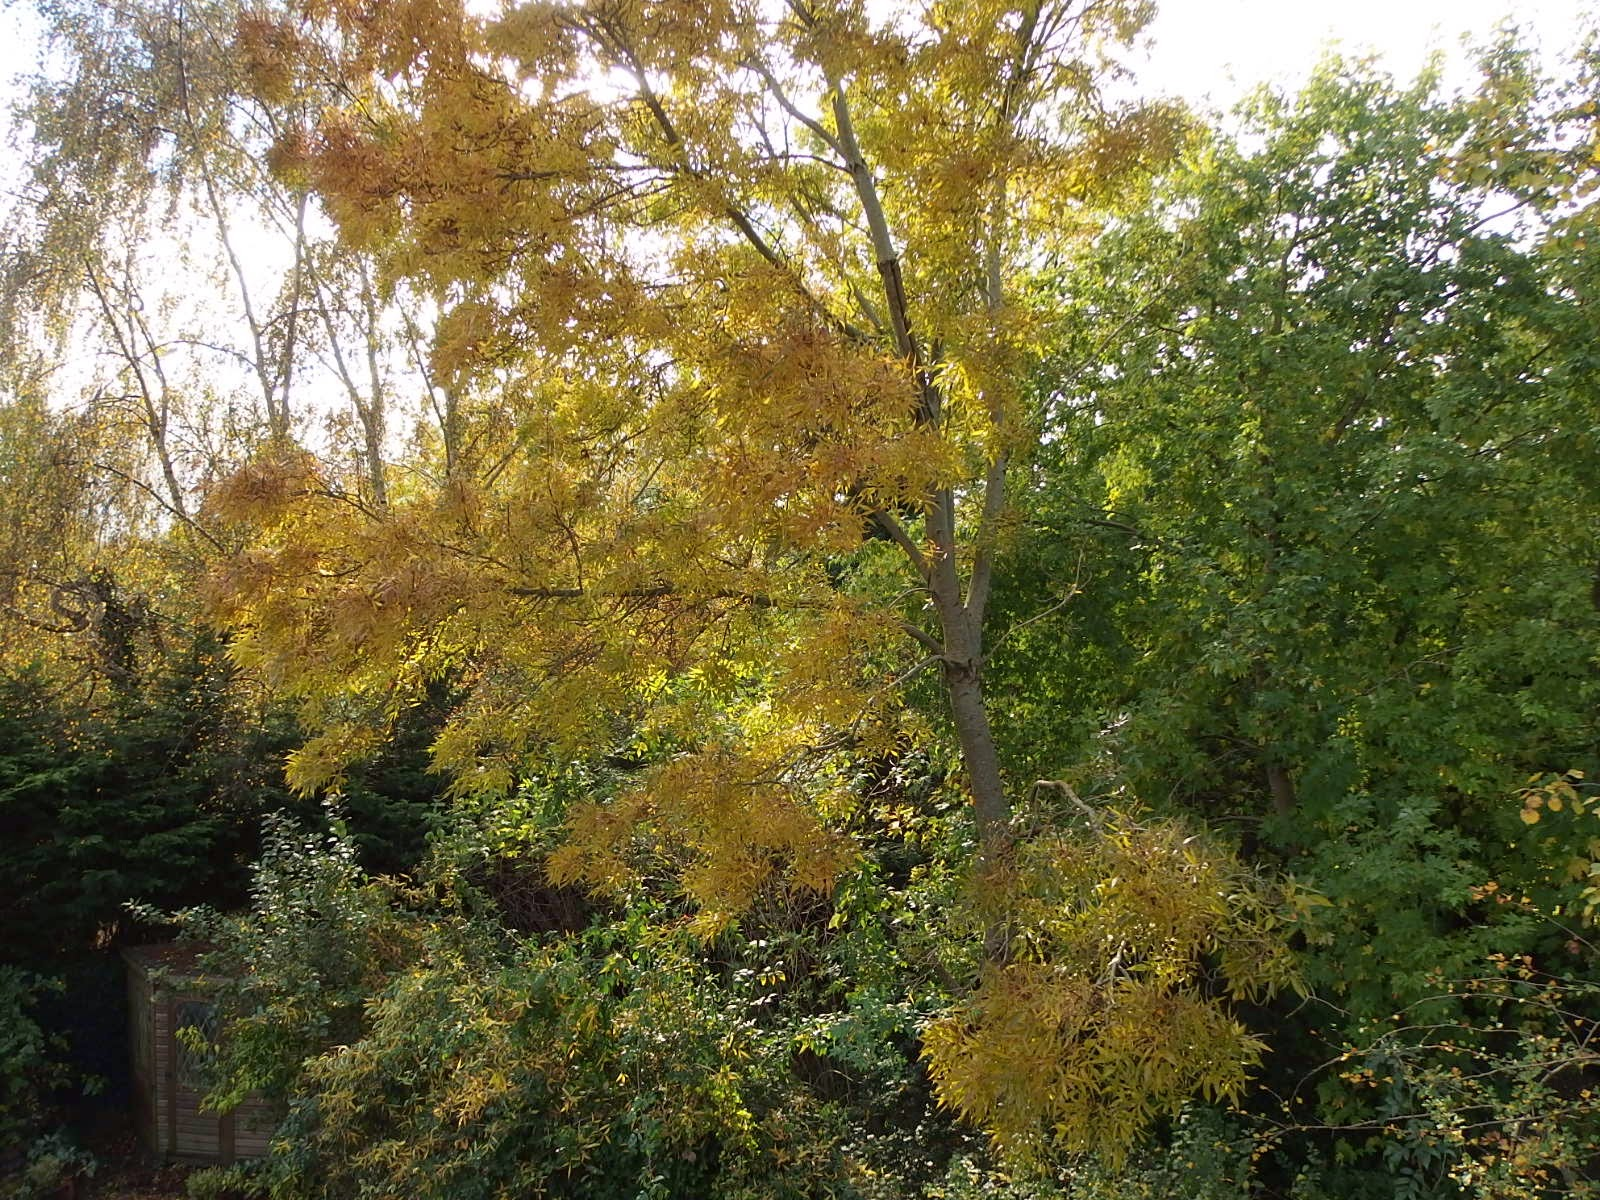 Photo of an ash tree at its most golden moment October 2014